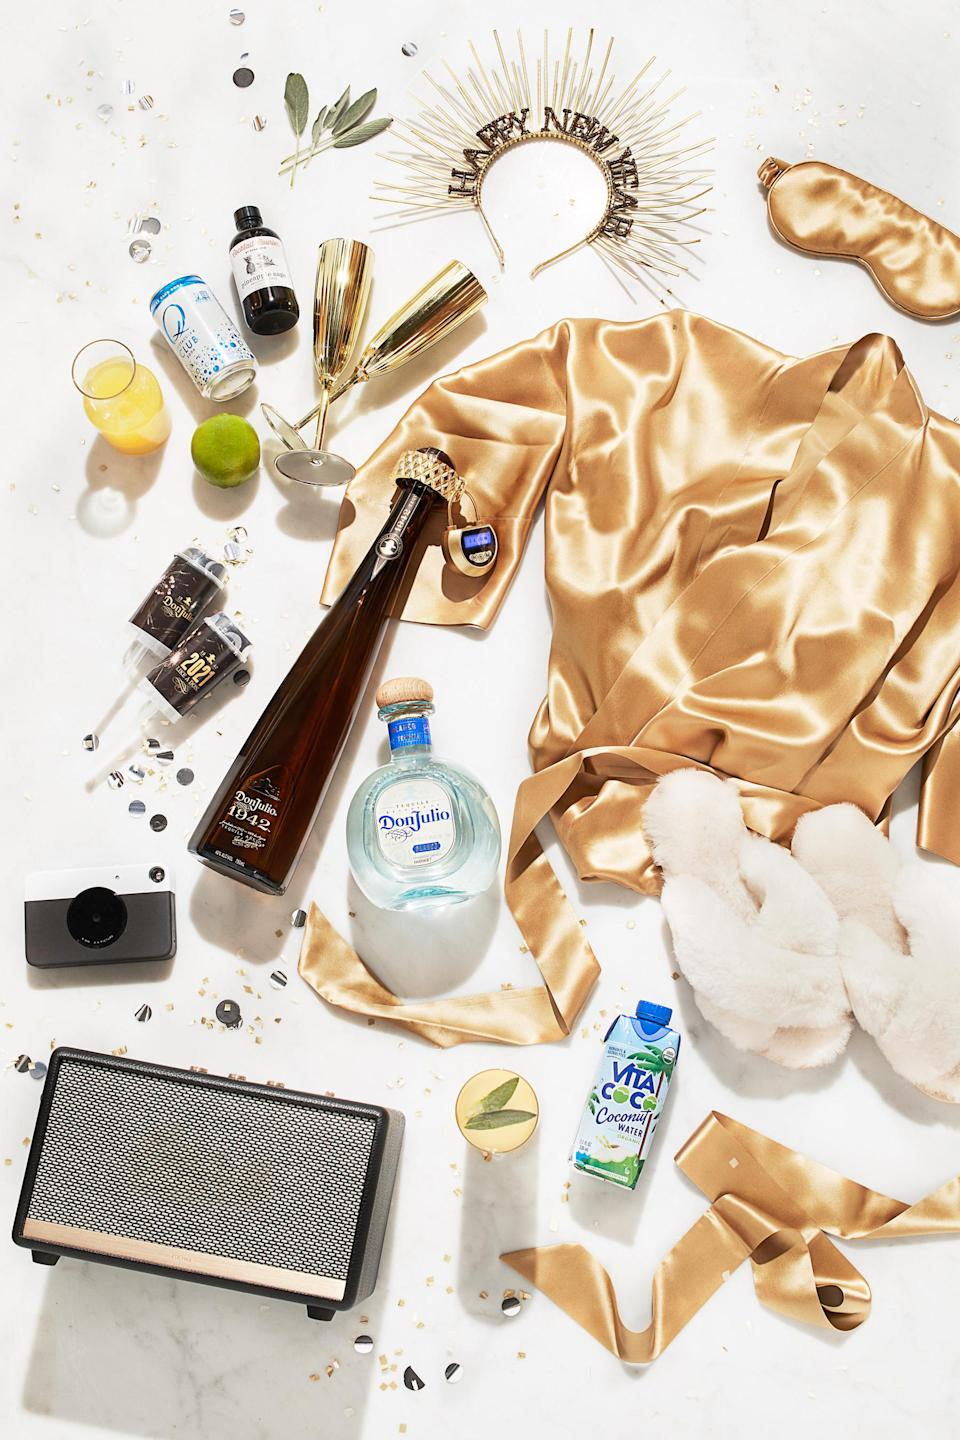 For those looking to recreate a lavish night out in the comfort of their own home, Tequila Don Julio has created this epic New Year's Eve VVIP Party Kit available on Cocktail Courier for $2,021 that comes complete with everything you need to celebrate the new year and step into 2021 in style.